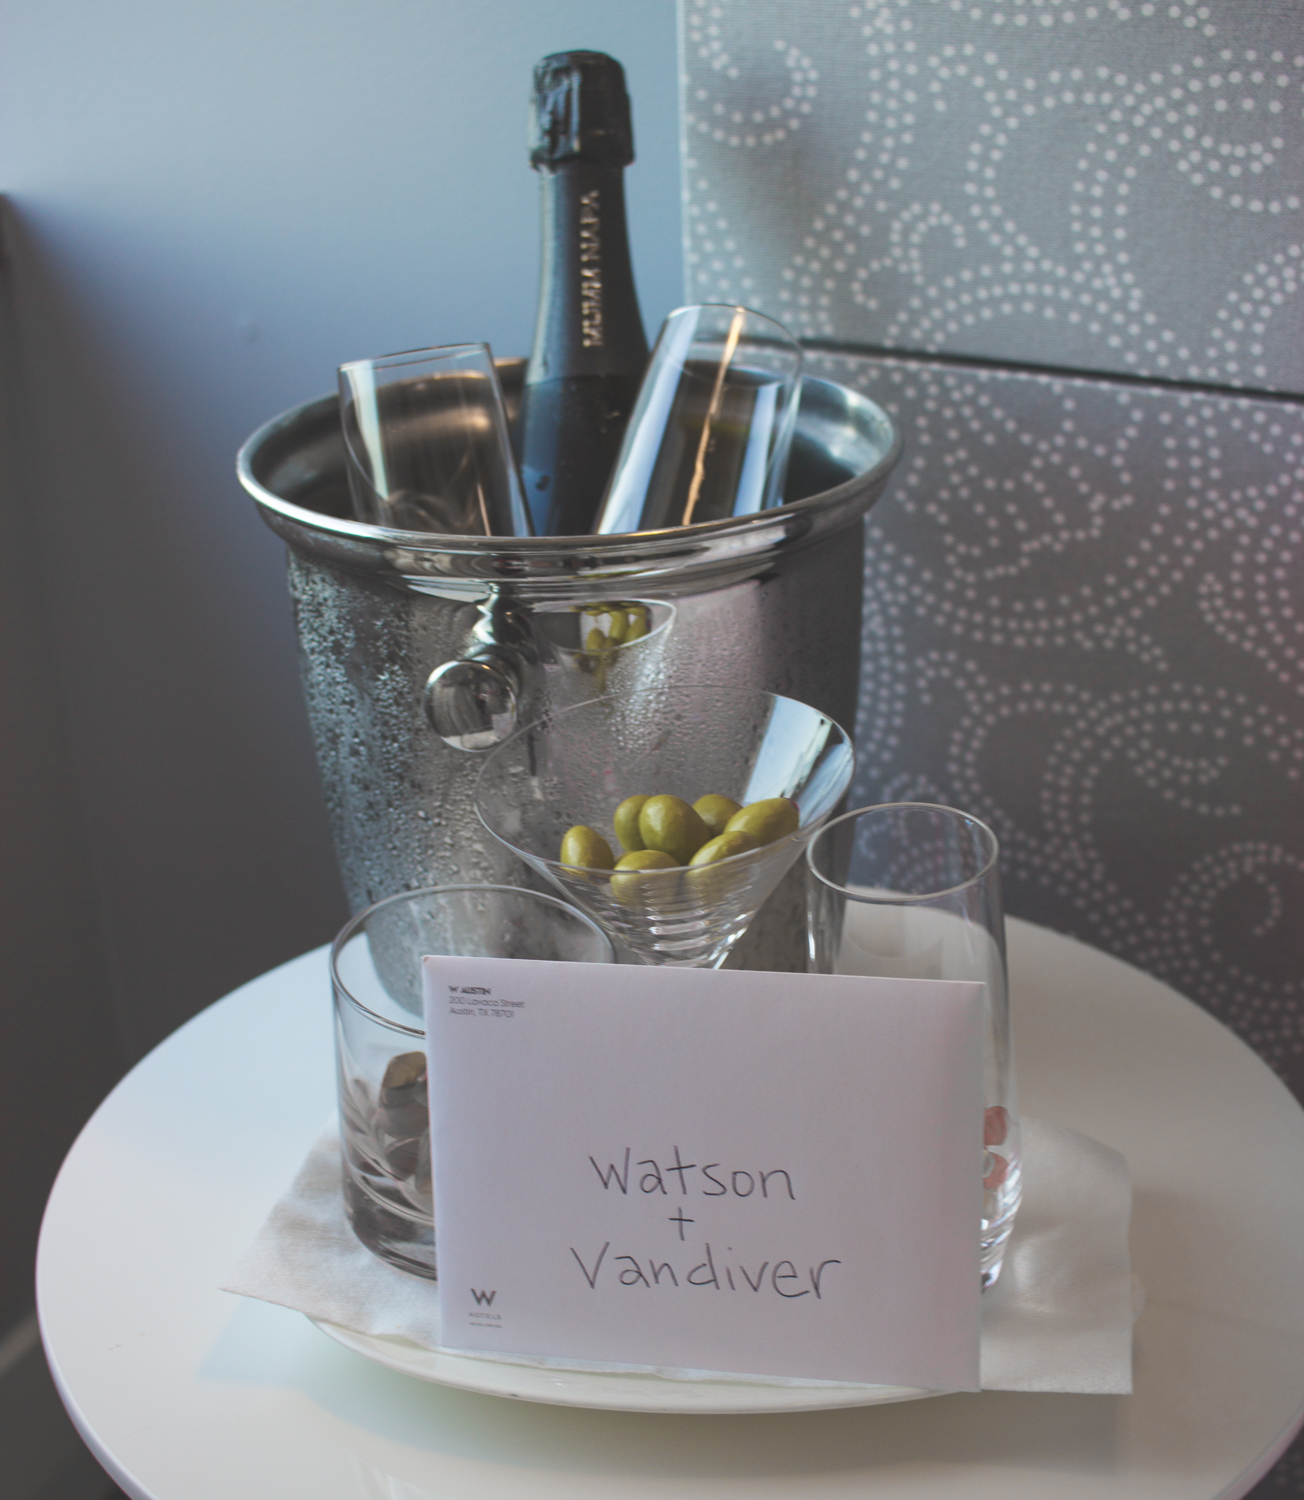 livvyland-blog-olivia-watson-vandi-fair-w-hotel-atx-staycation-stay-cation-austin-texas-fashion-travel-blogger-hotel-review-champagne-in-roomjpg